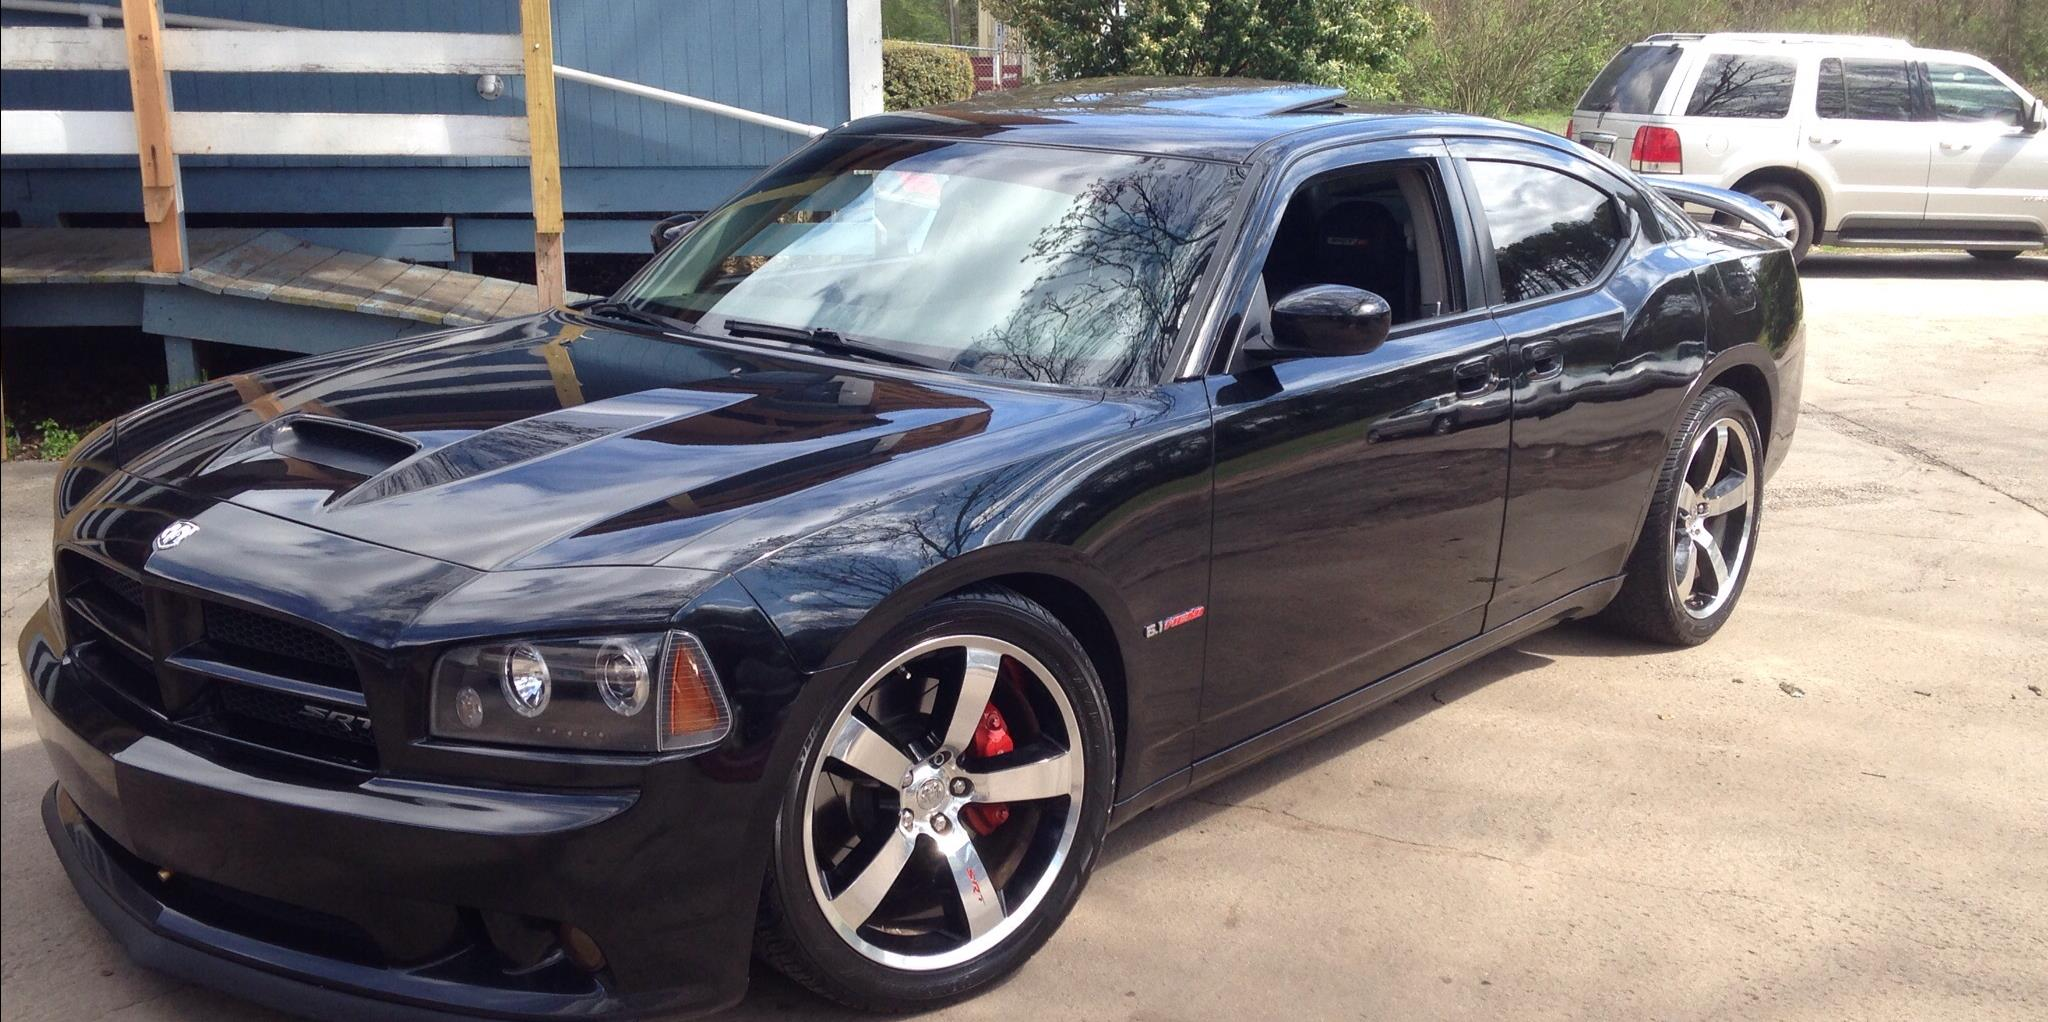 4087234 2006 Dodge Charger